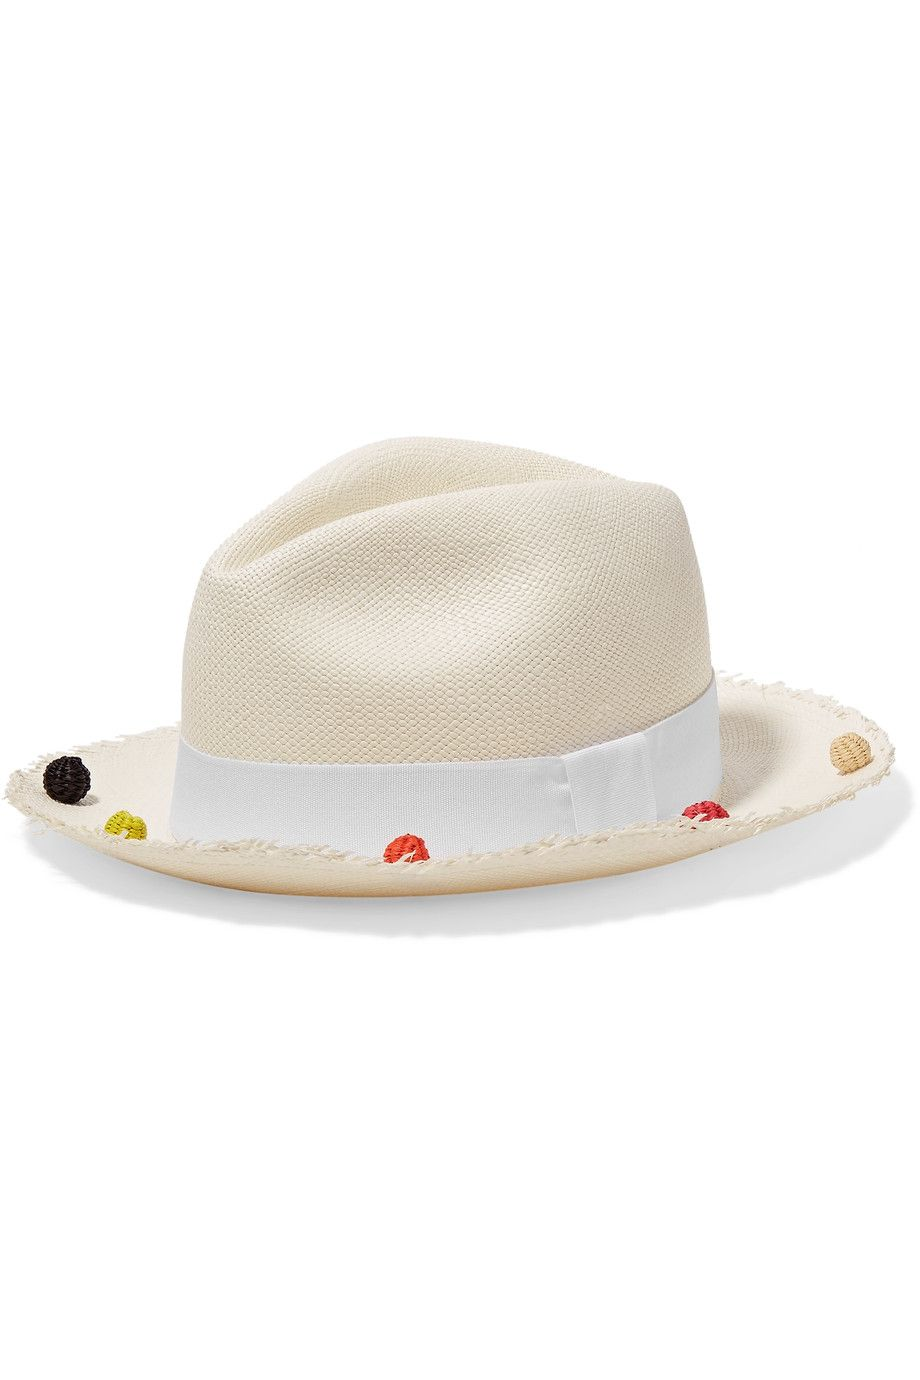 Shop on-sale Sensi Studio Pompom-embellished toquilla straw Panama hat .  Browse other discount designer Hats   more on The Most Fashionable Fashion  Outlet b4810c6763d1